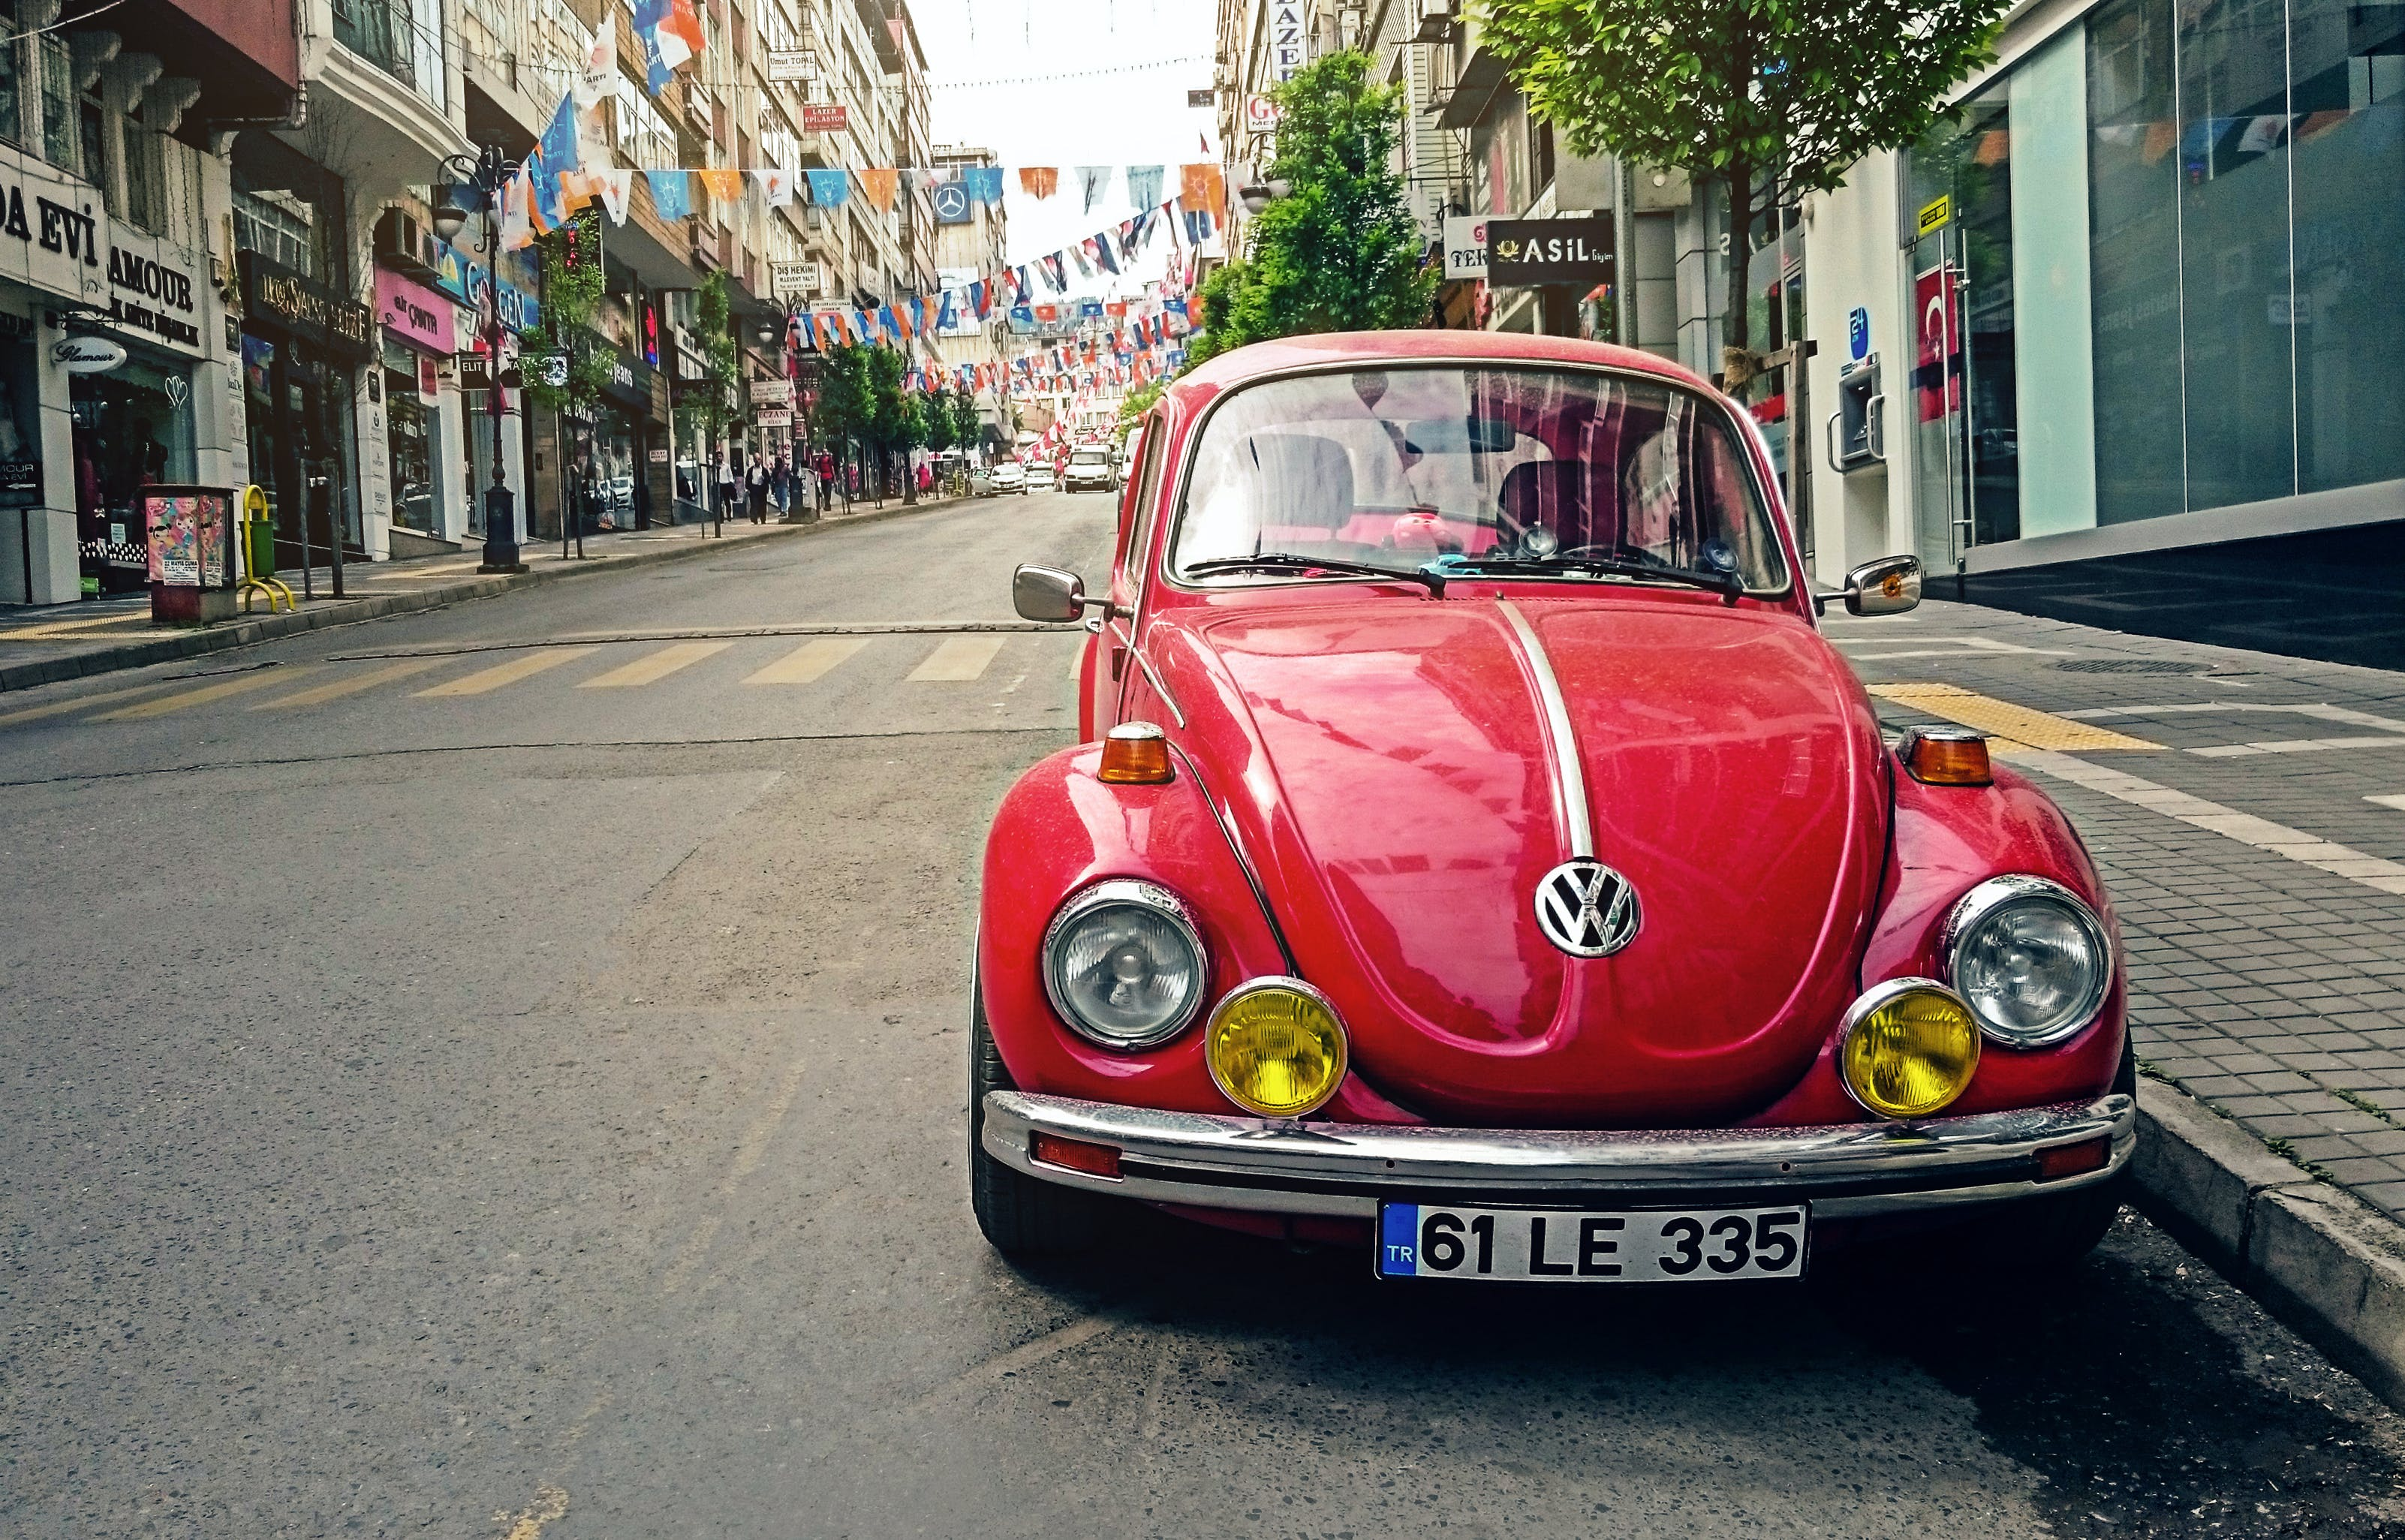 Red Volkswagen Beetle Parked at Road Side Near Pedestrian Lane